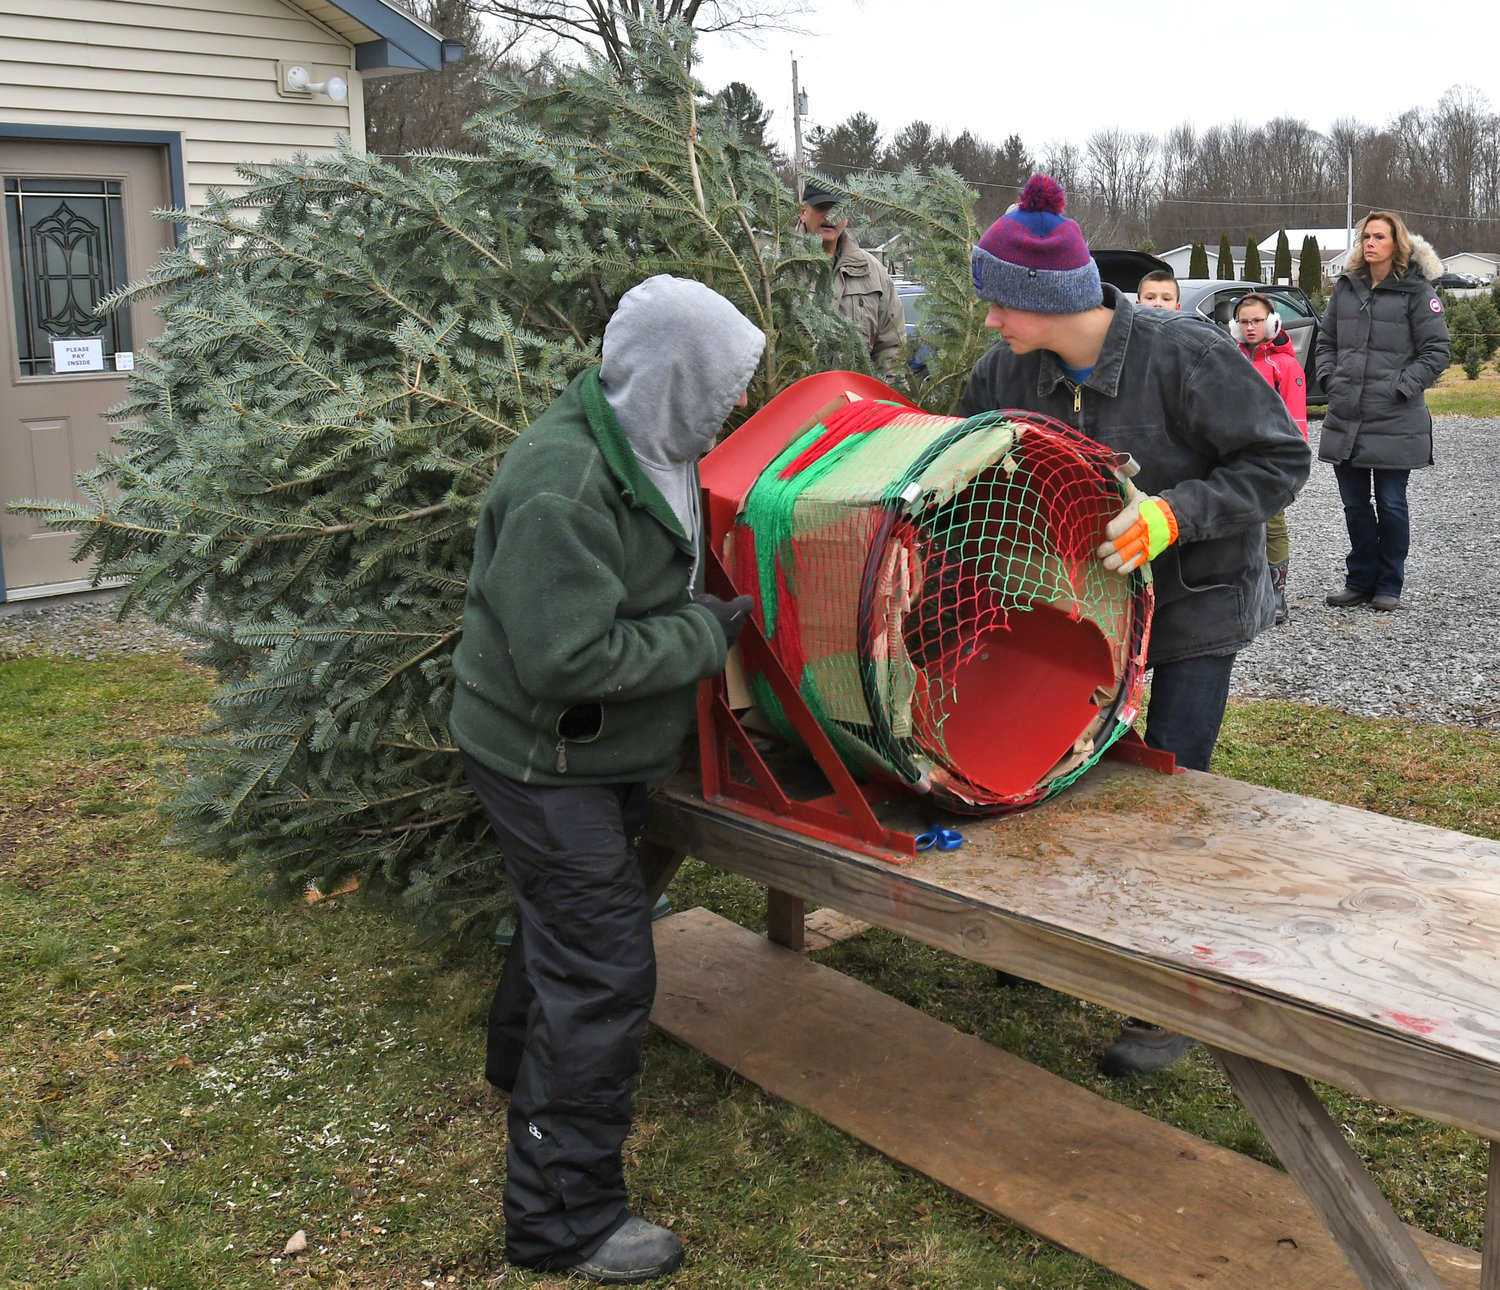 TREE WRAPPING — Aaron Abbe and Alex Freel workers at Shuster Tree Farm in Verona wrap up a tree at the Senn Road farm owned by Dick and Julie Shuster.